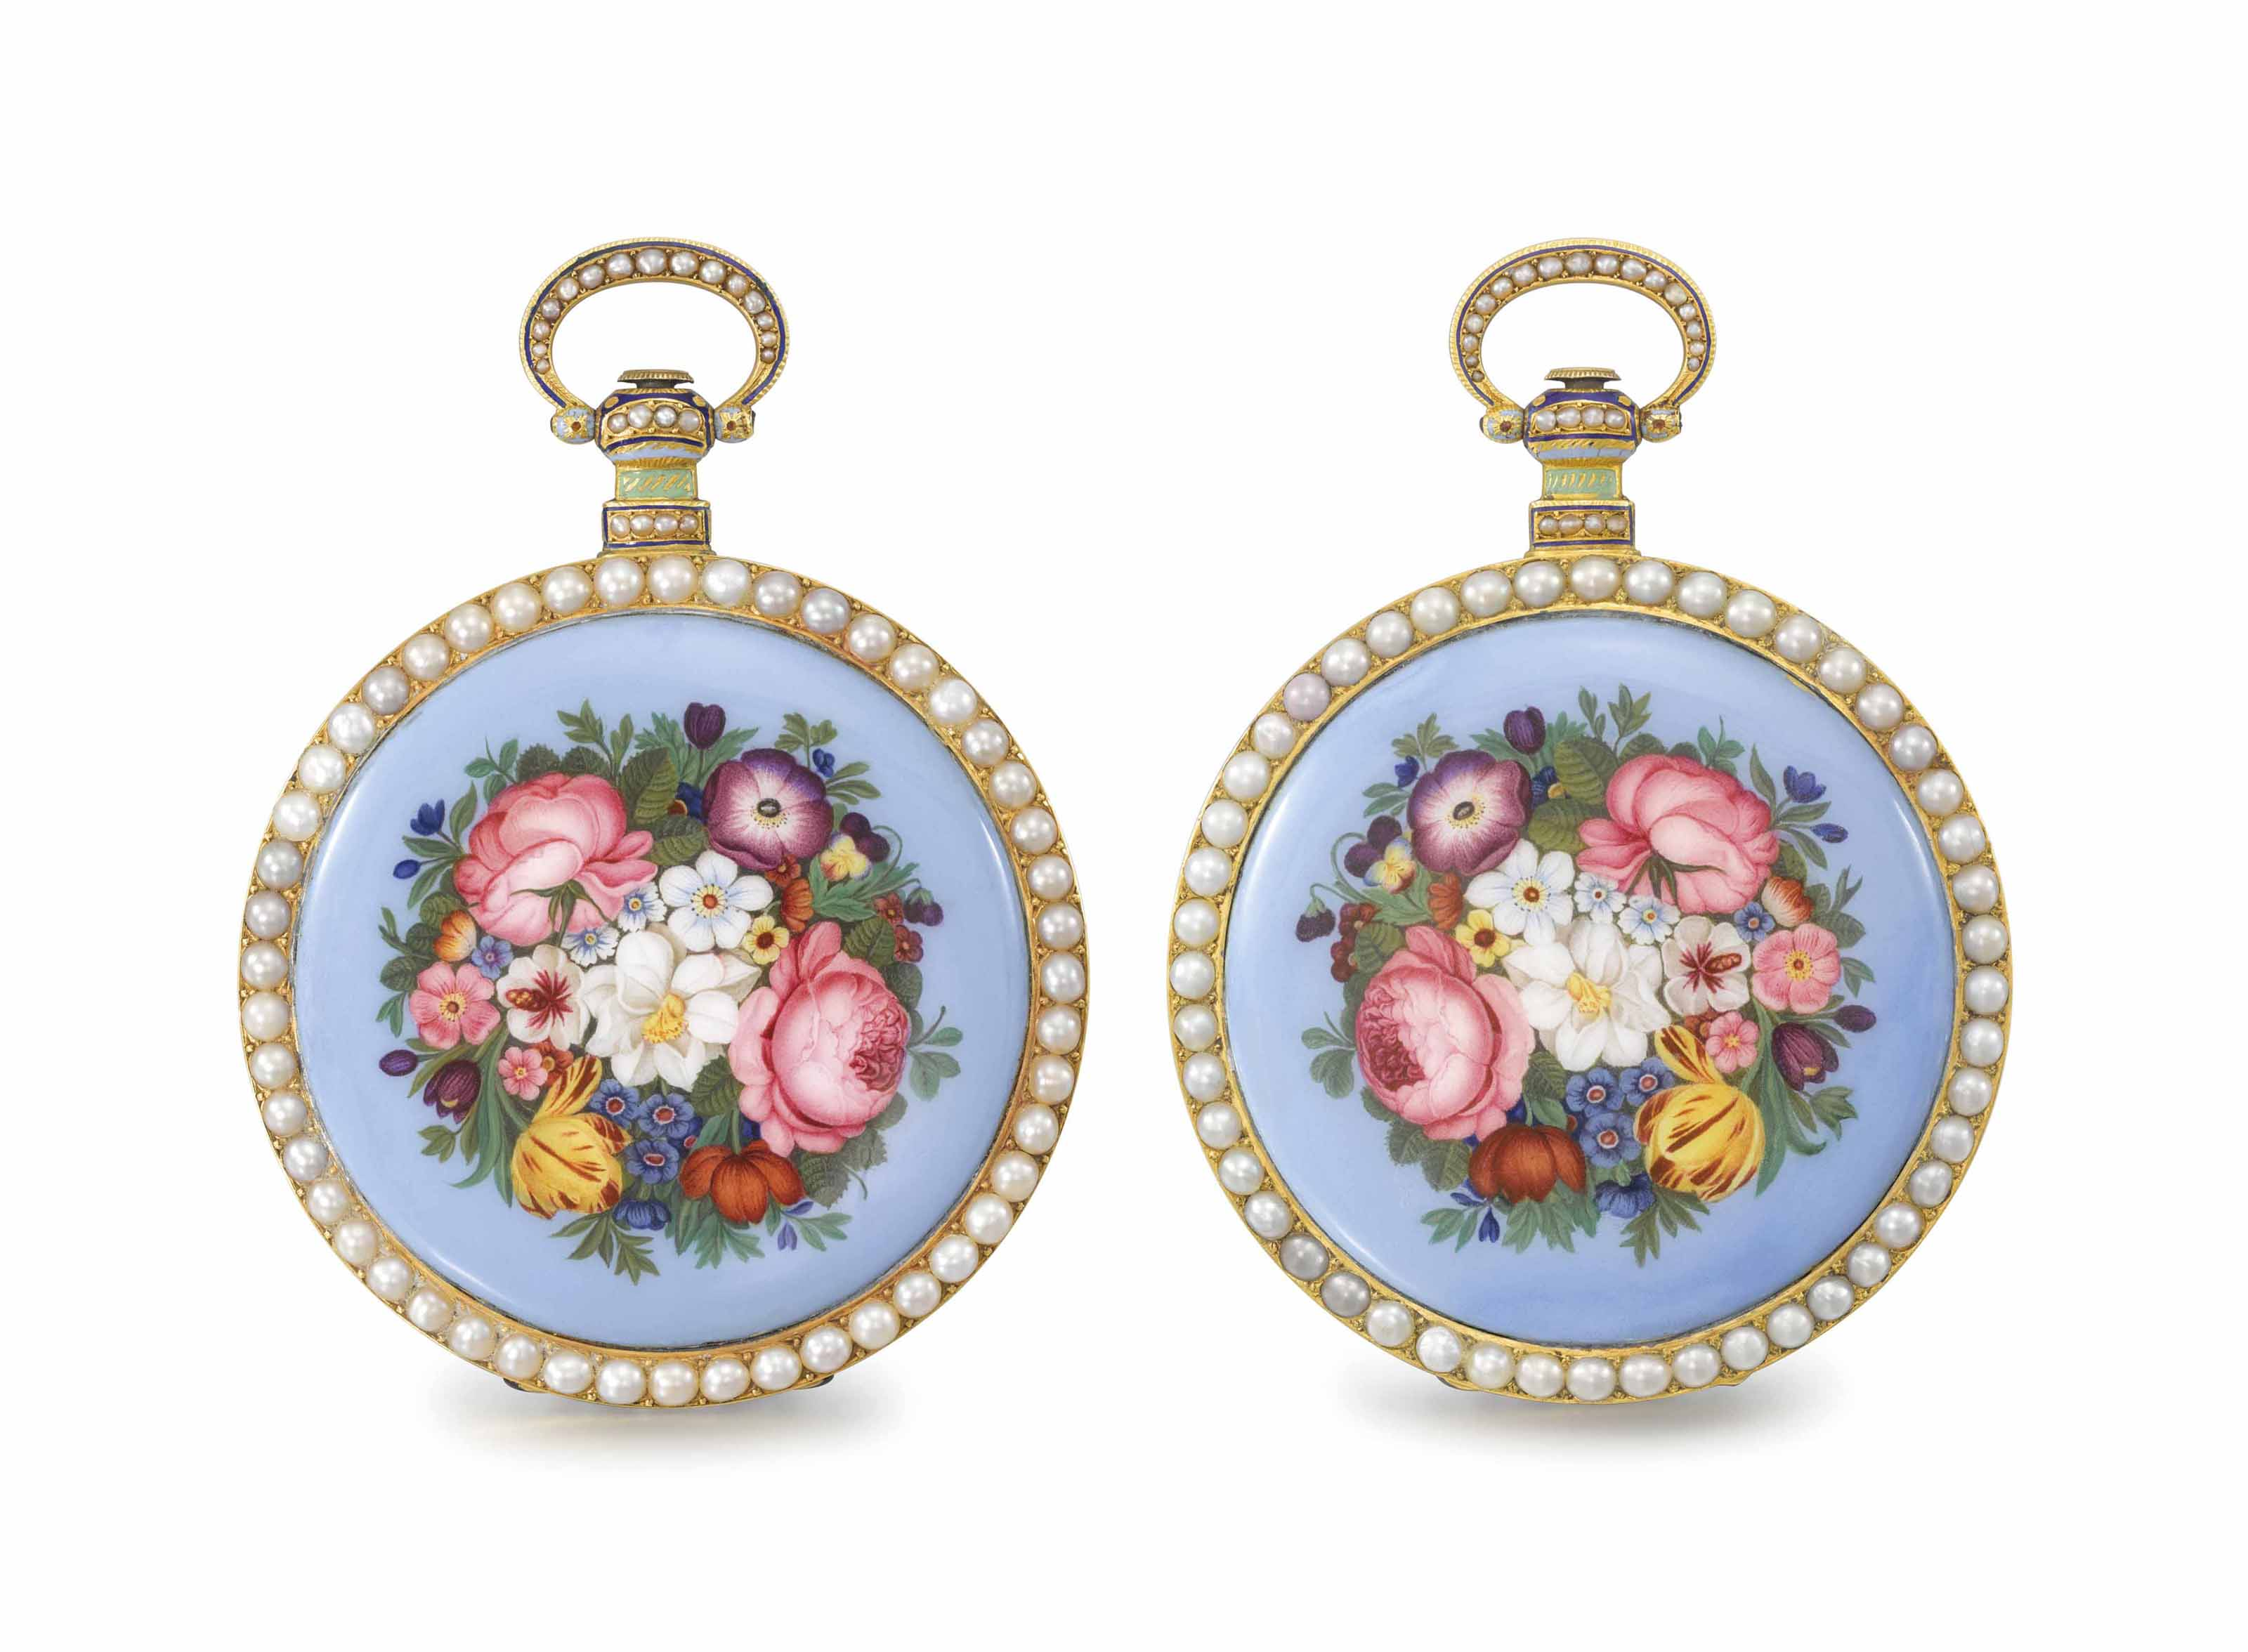 Bovet. A very fine, rare and large 18K gold, enamel and pearl-set identical numbered, mirror-image pair of openface centre seconds duplex watches, made for the Chinese market